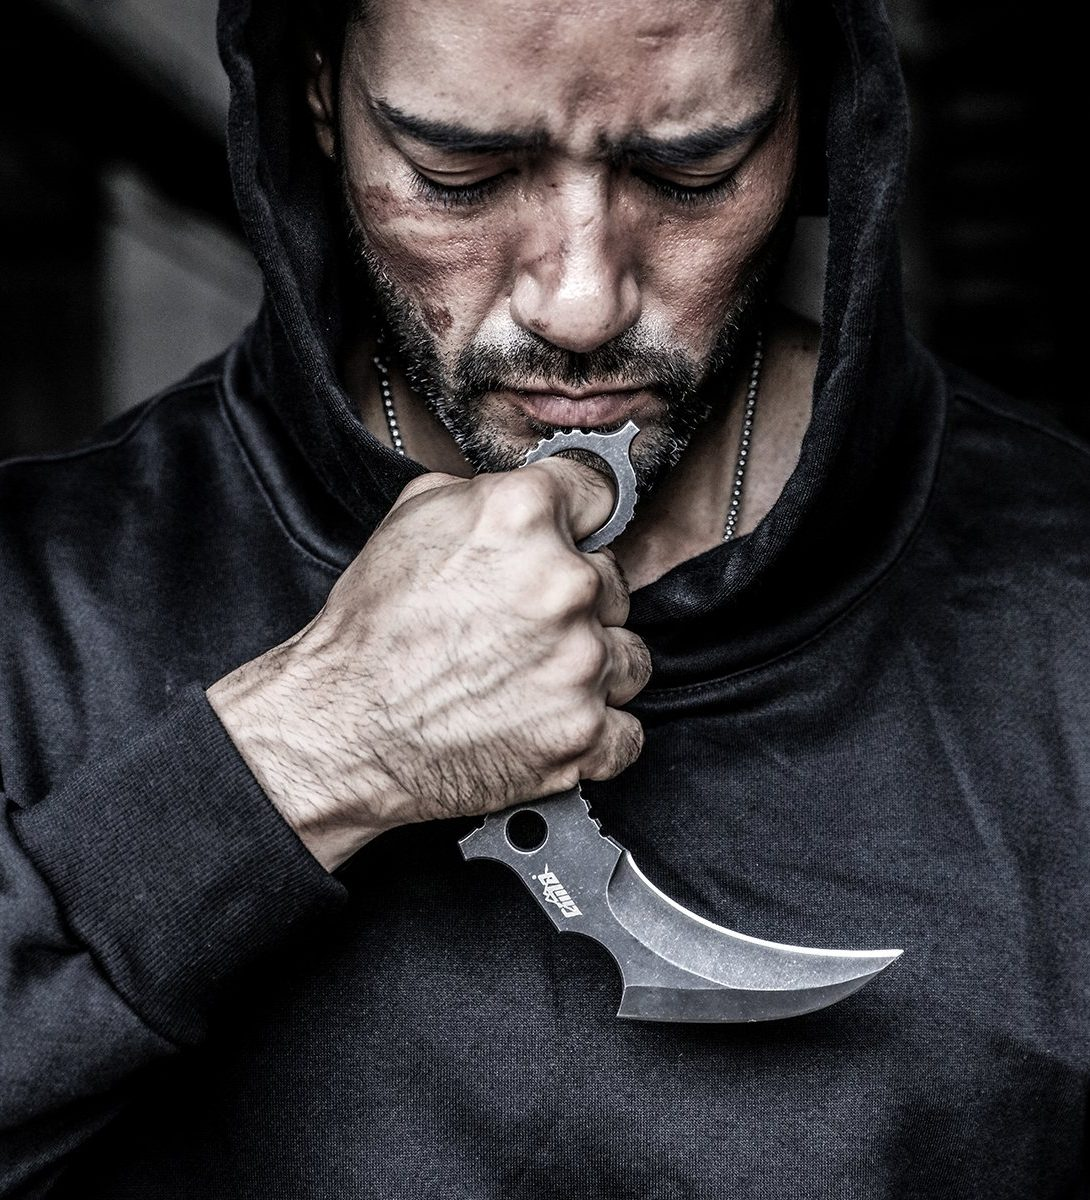 Man Holding Self-Defense Knife